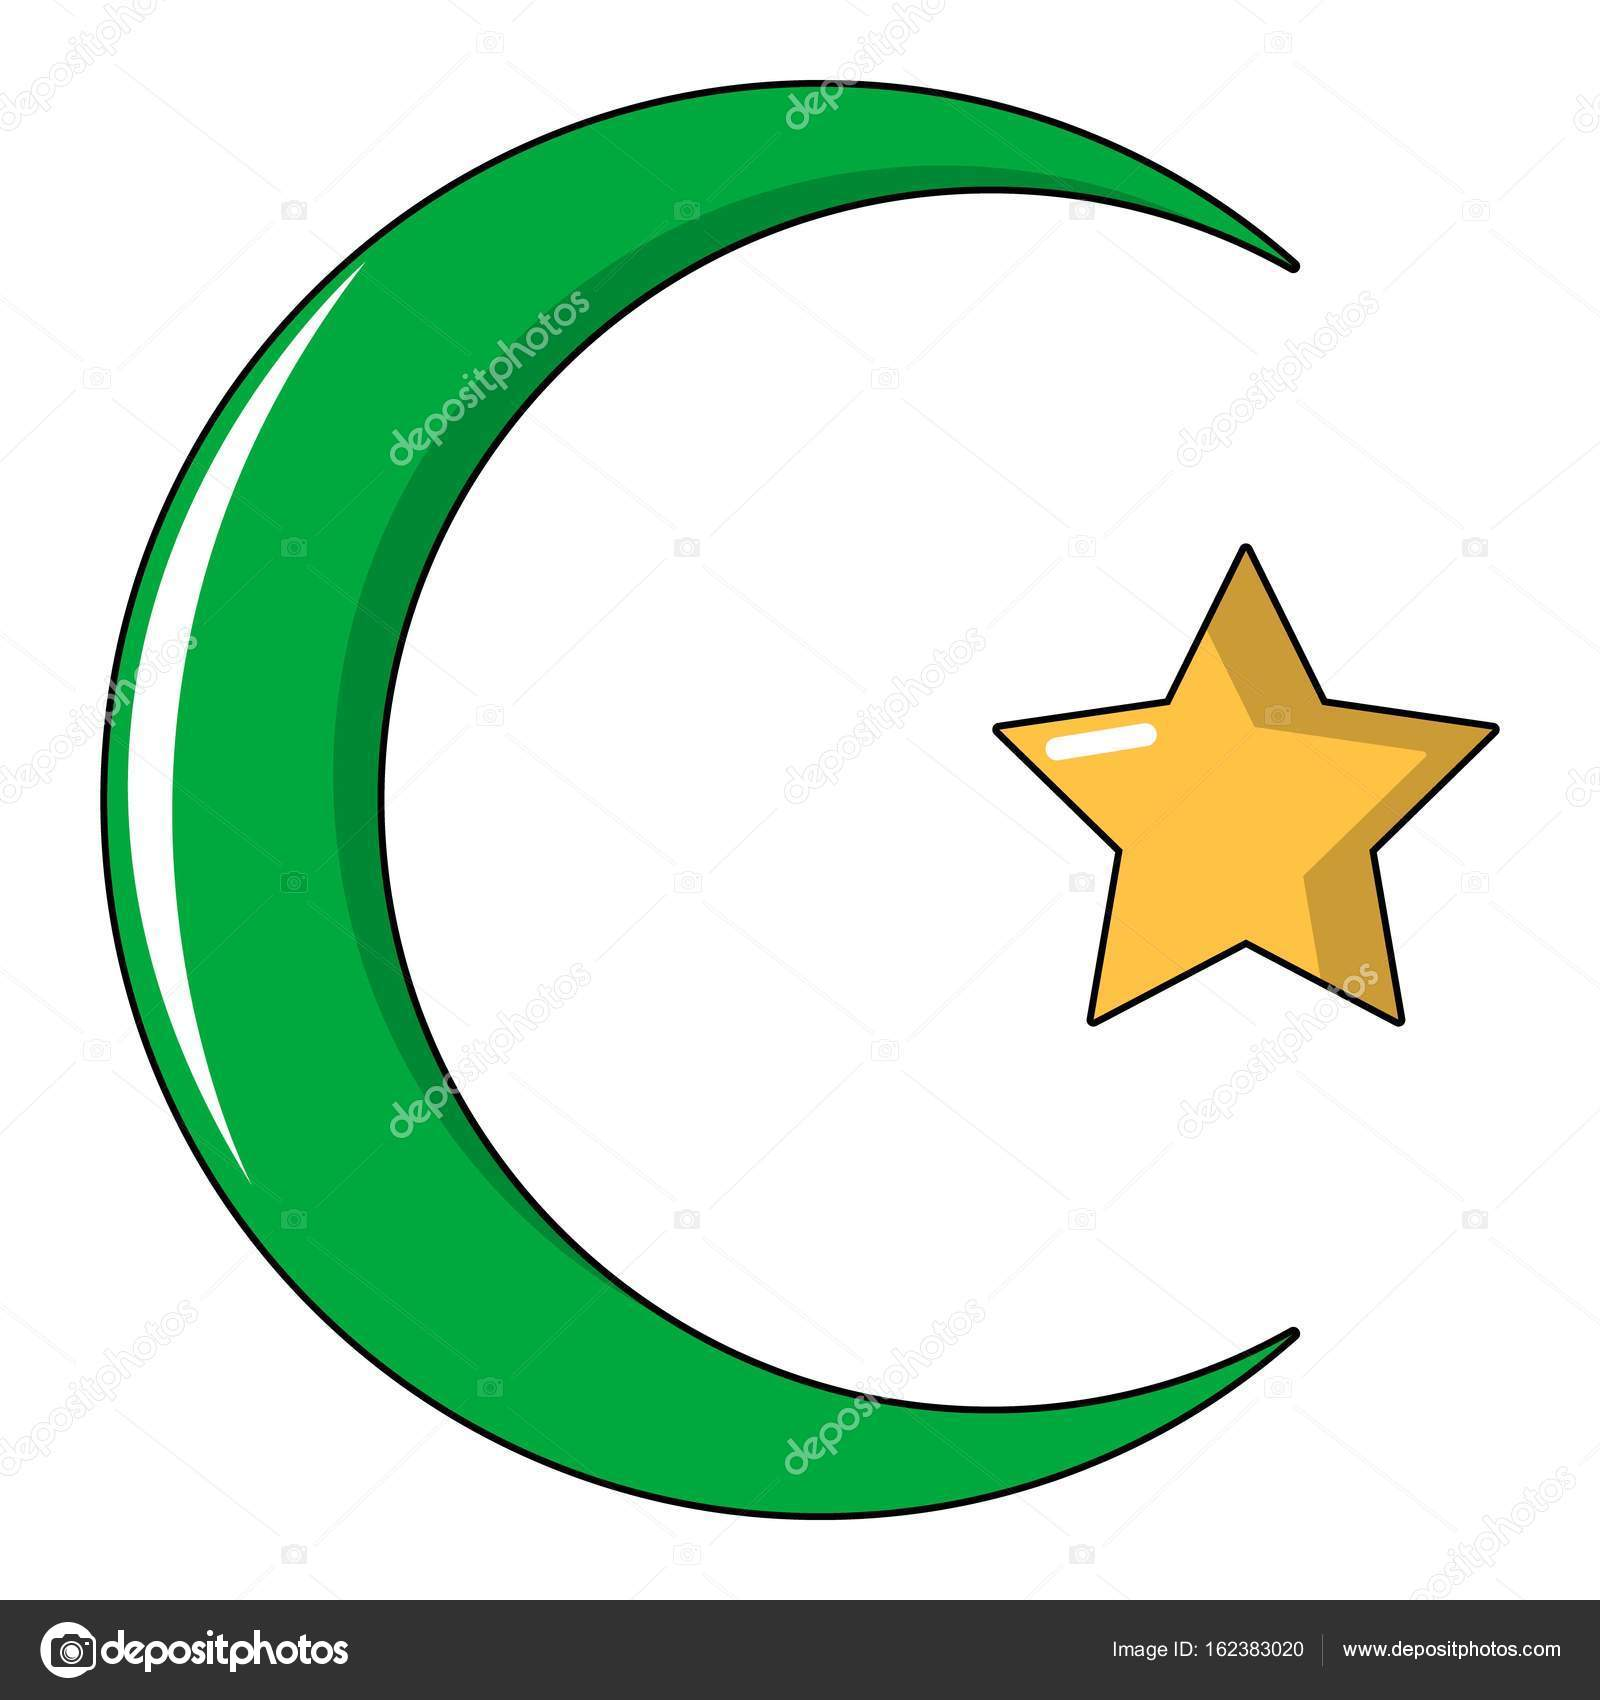 Star Crescent Symbol Of Islam Icon Cartoon Style Stock Vector